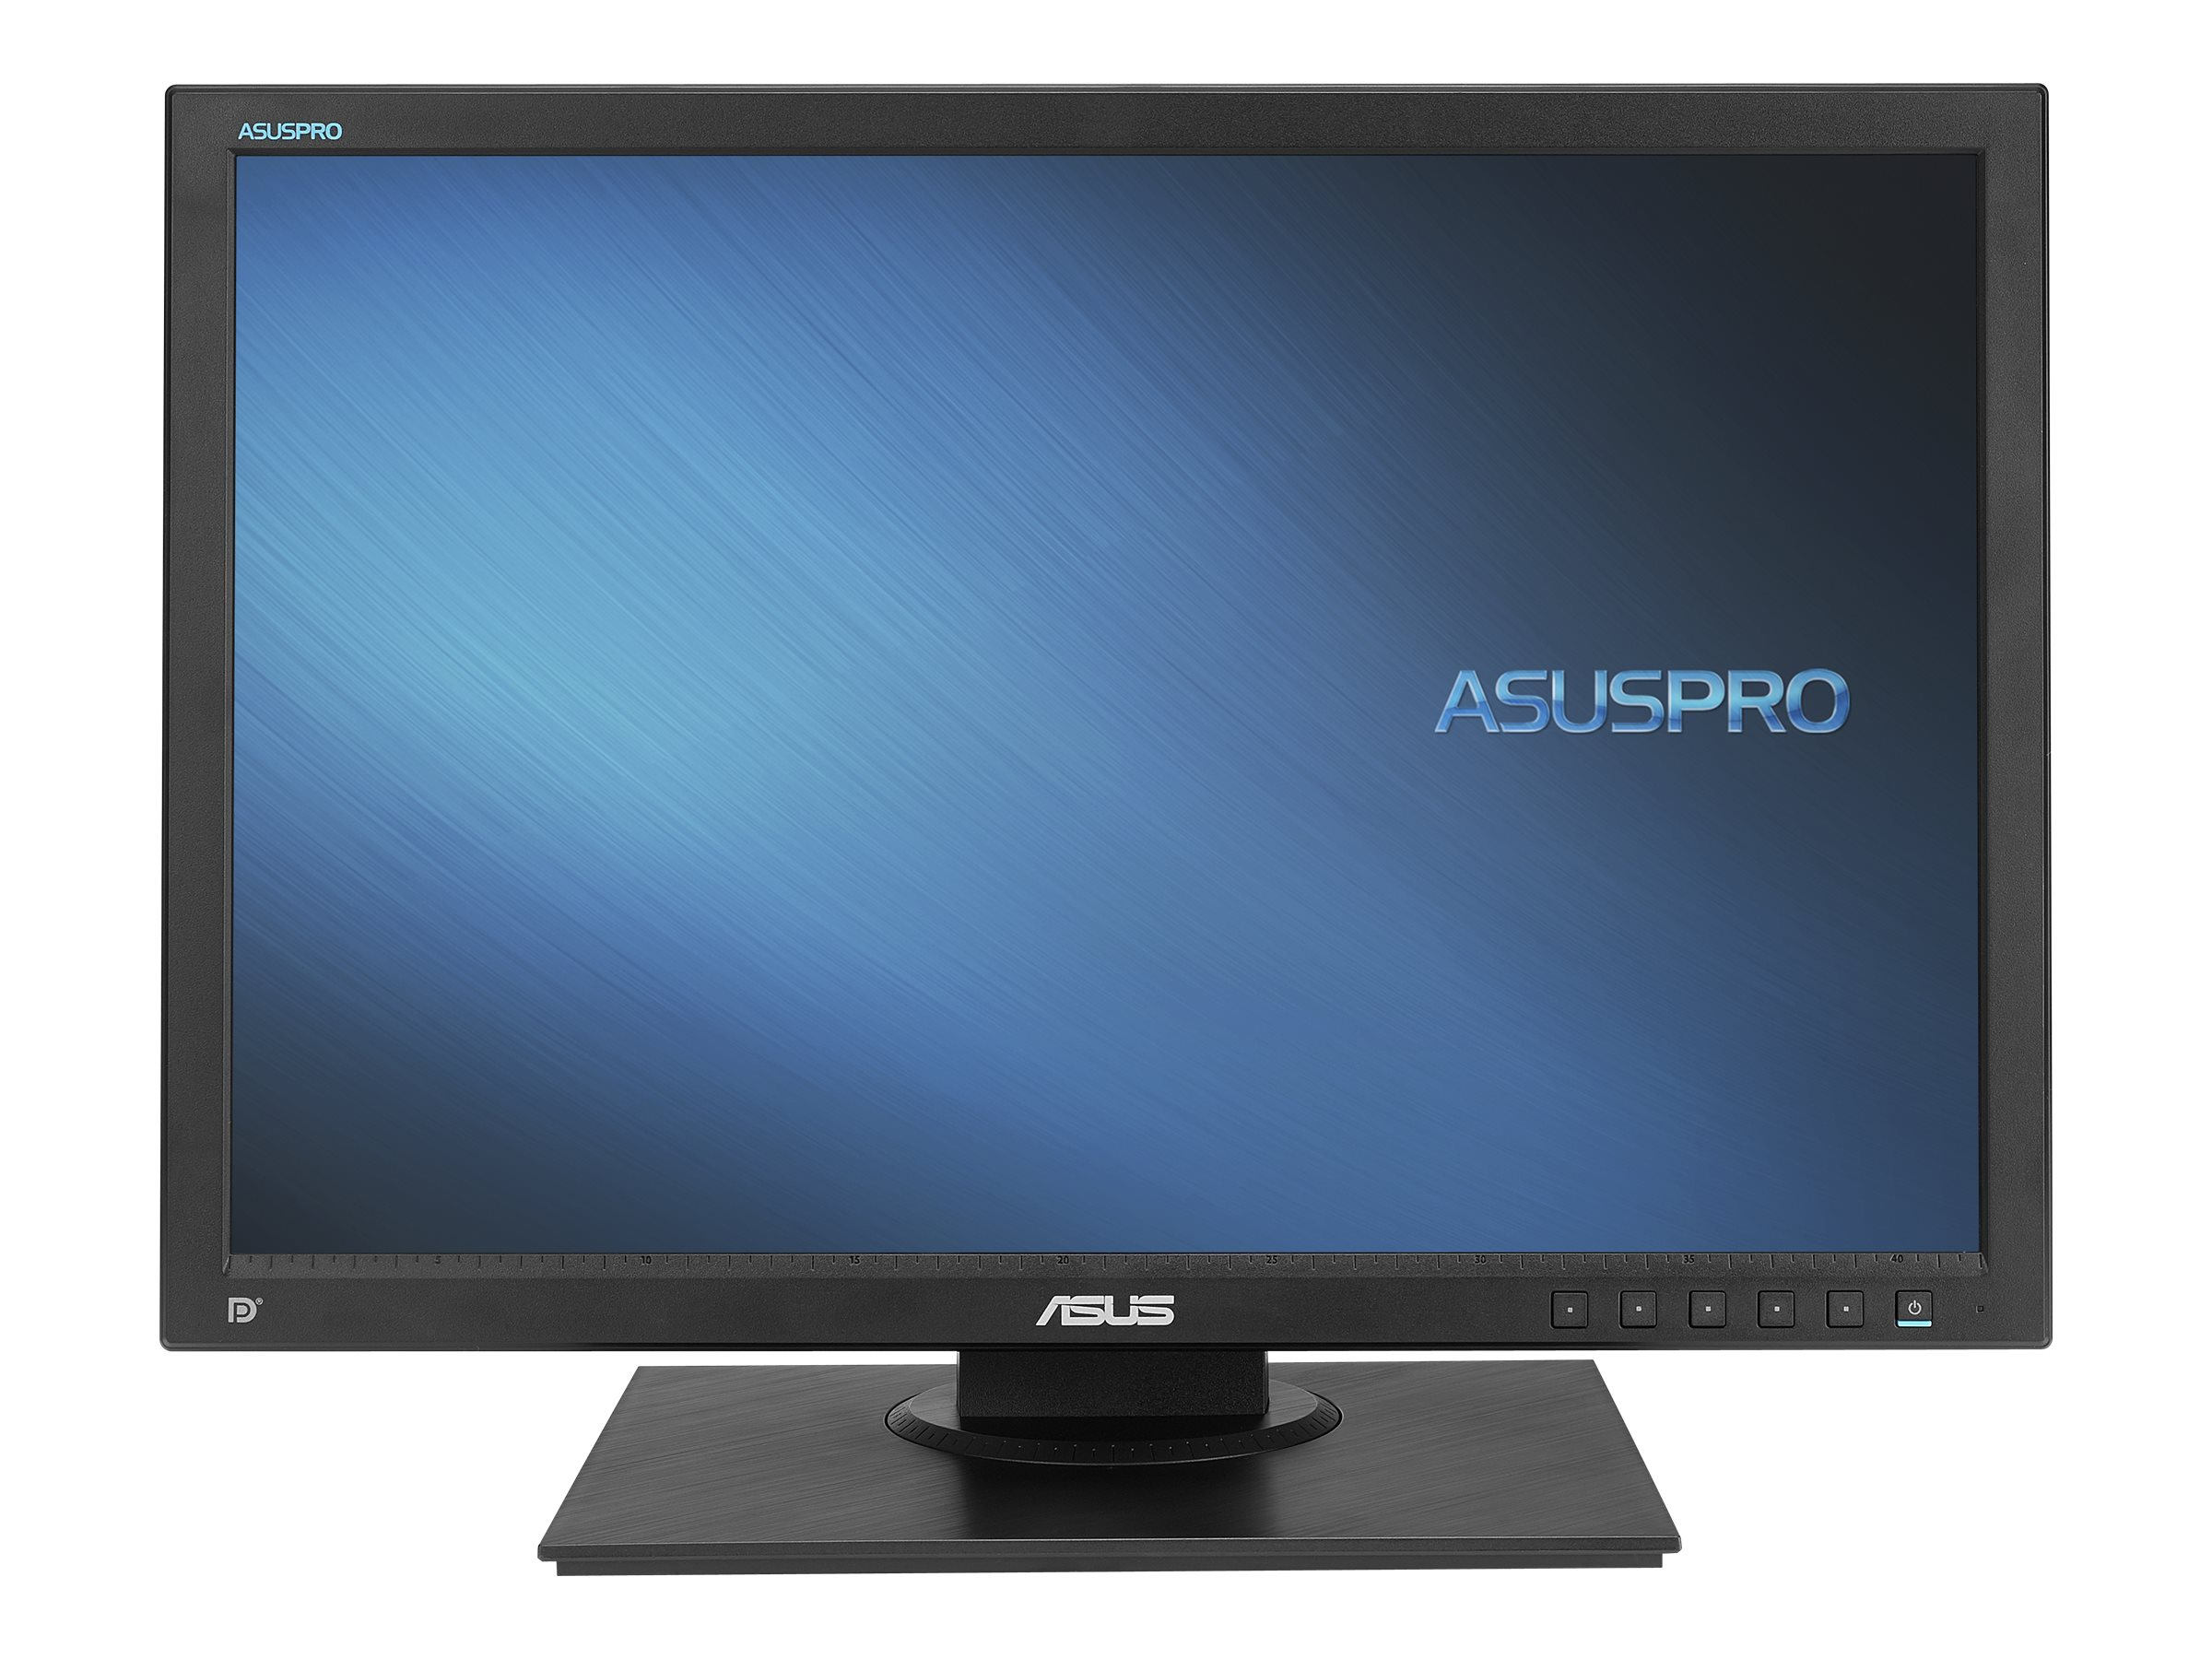 Asus 19.5 C620AQ LED-LCD Monitor, Black, C620AQ